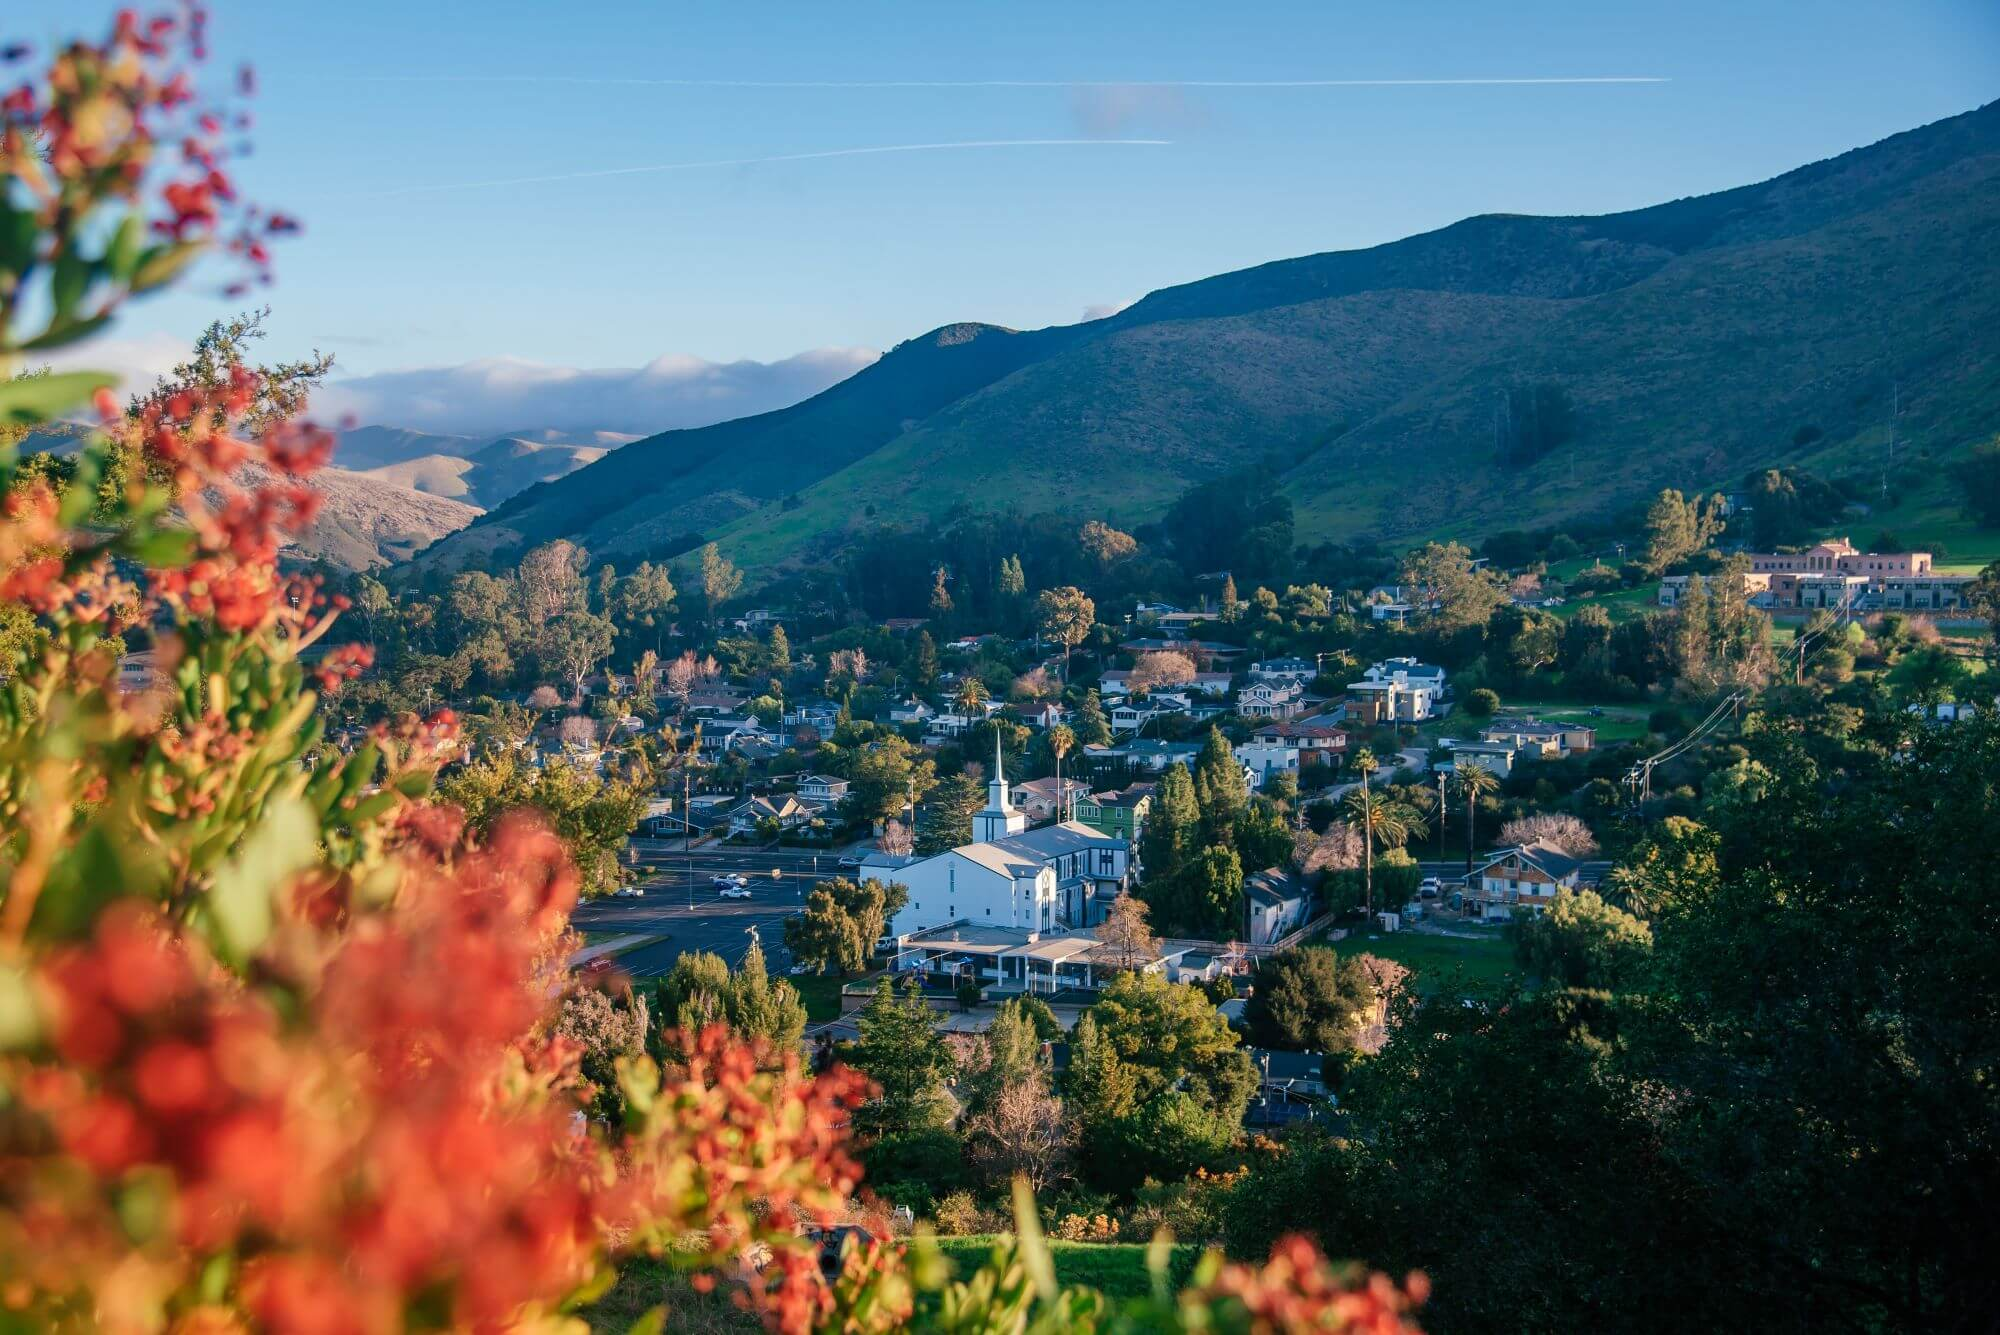 View of San Luis Obispo from Terrace Hill